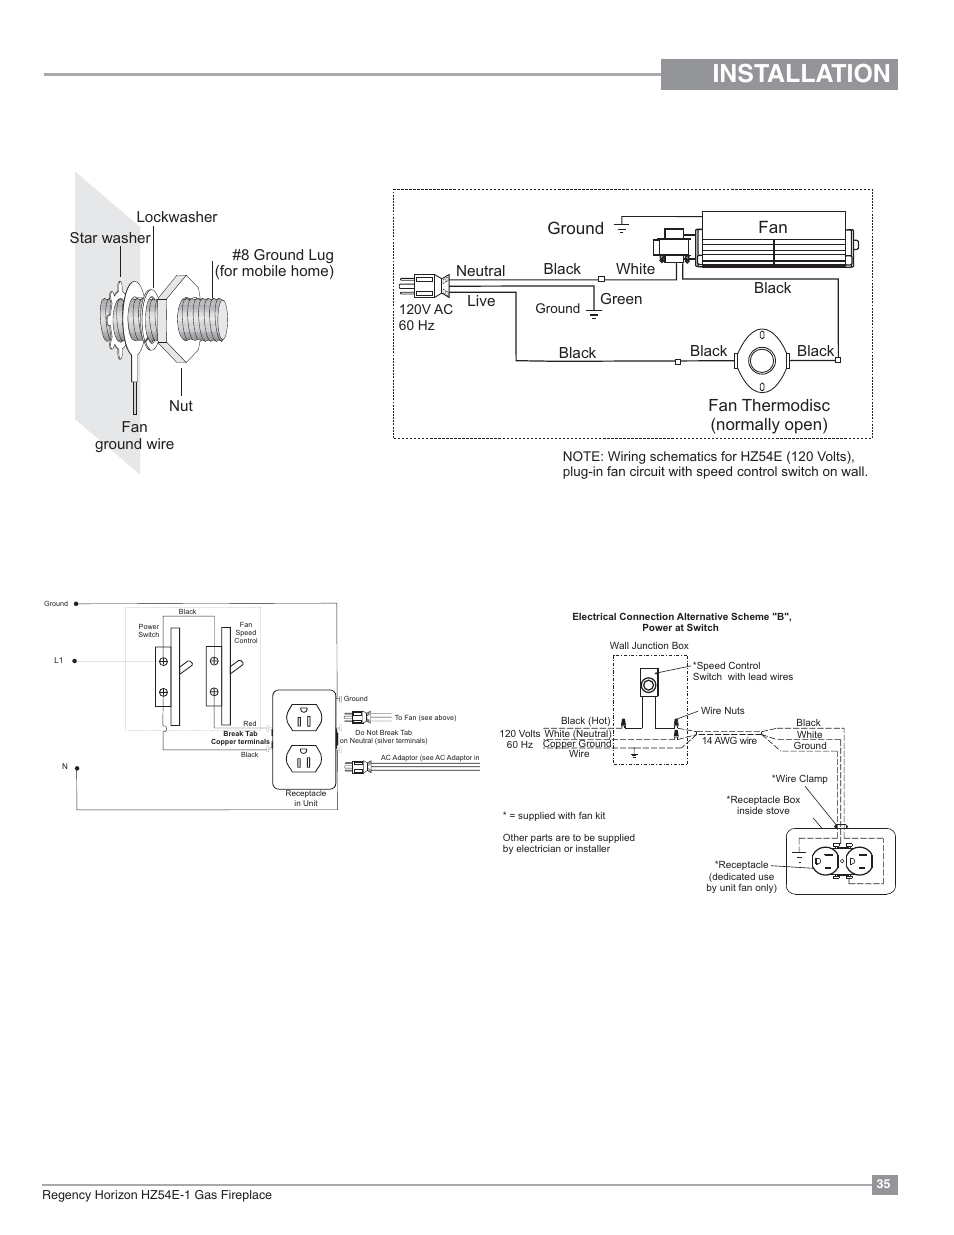 medium resolution of installation optional fan wiring diagram without proflame gtmfinstallation optional fan wiring diagram